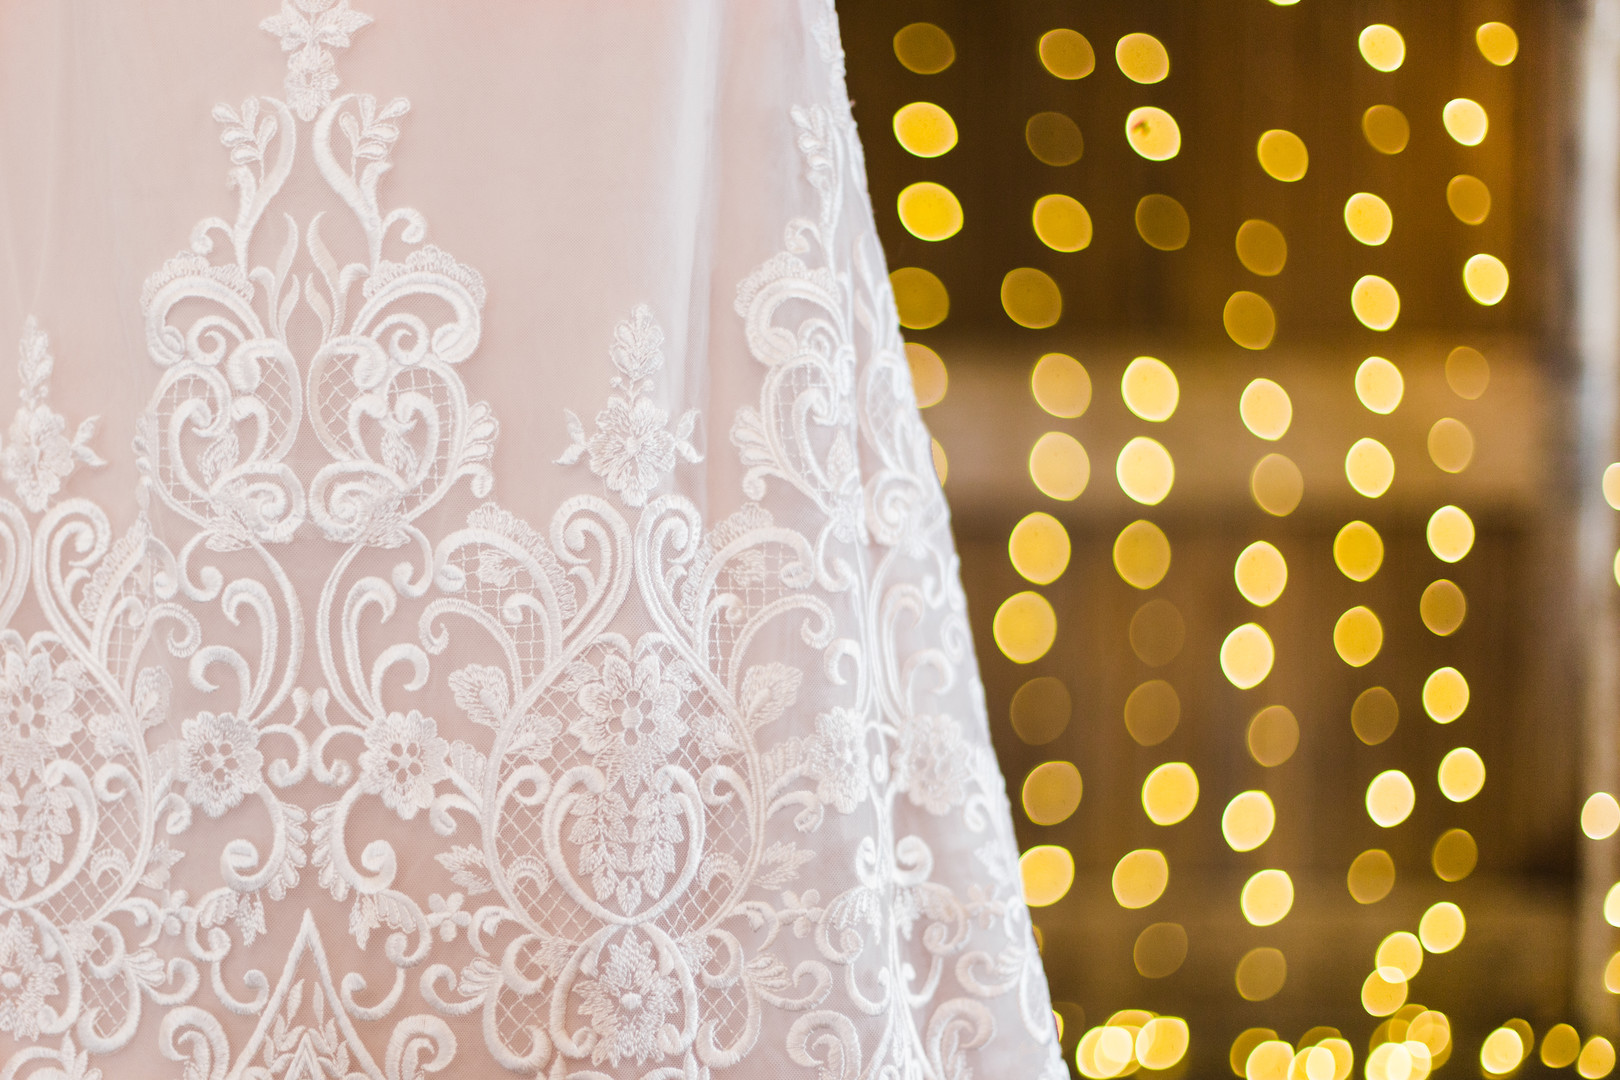 Lace wedding dress detail: Rustic barn wedding inspiration captured by Grace Rios Photography. See more fall wedding ideas at CHItheeWED.com!